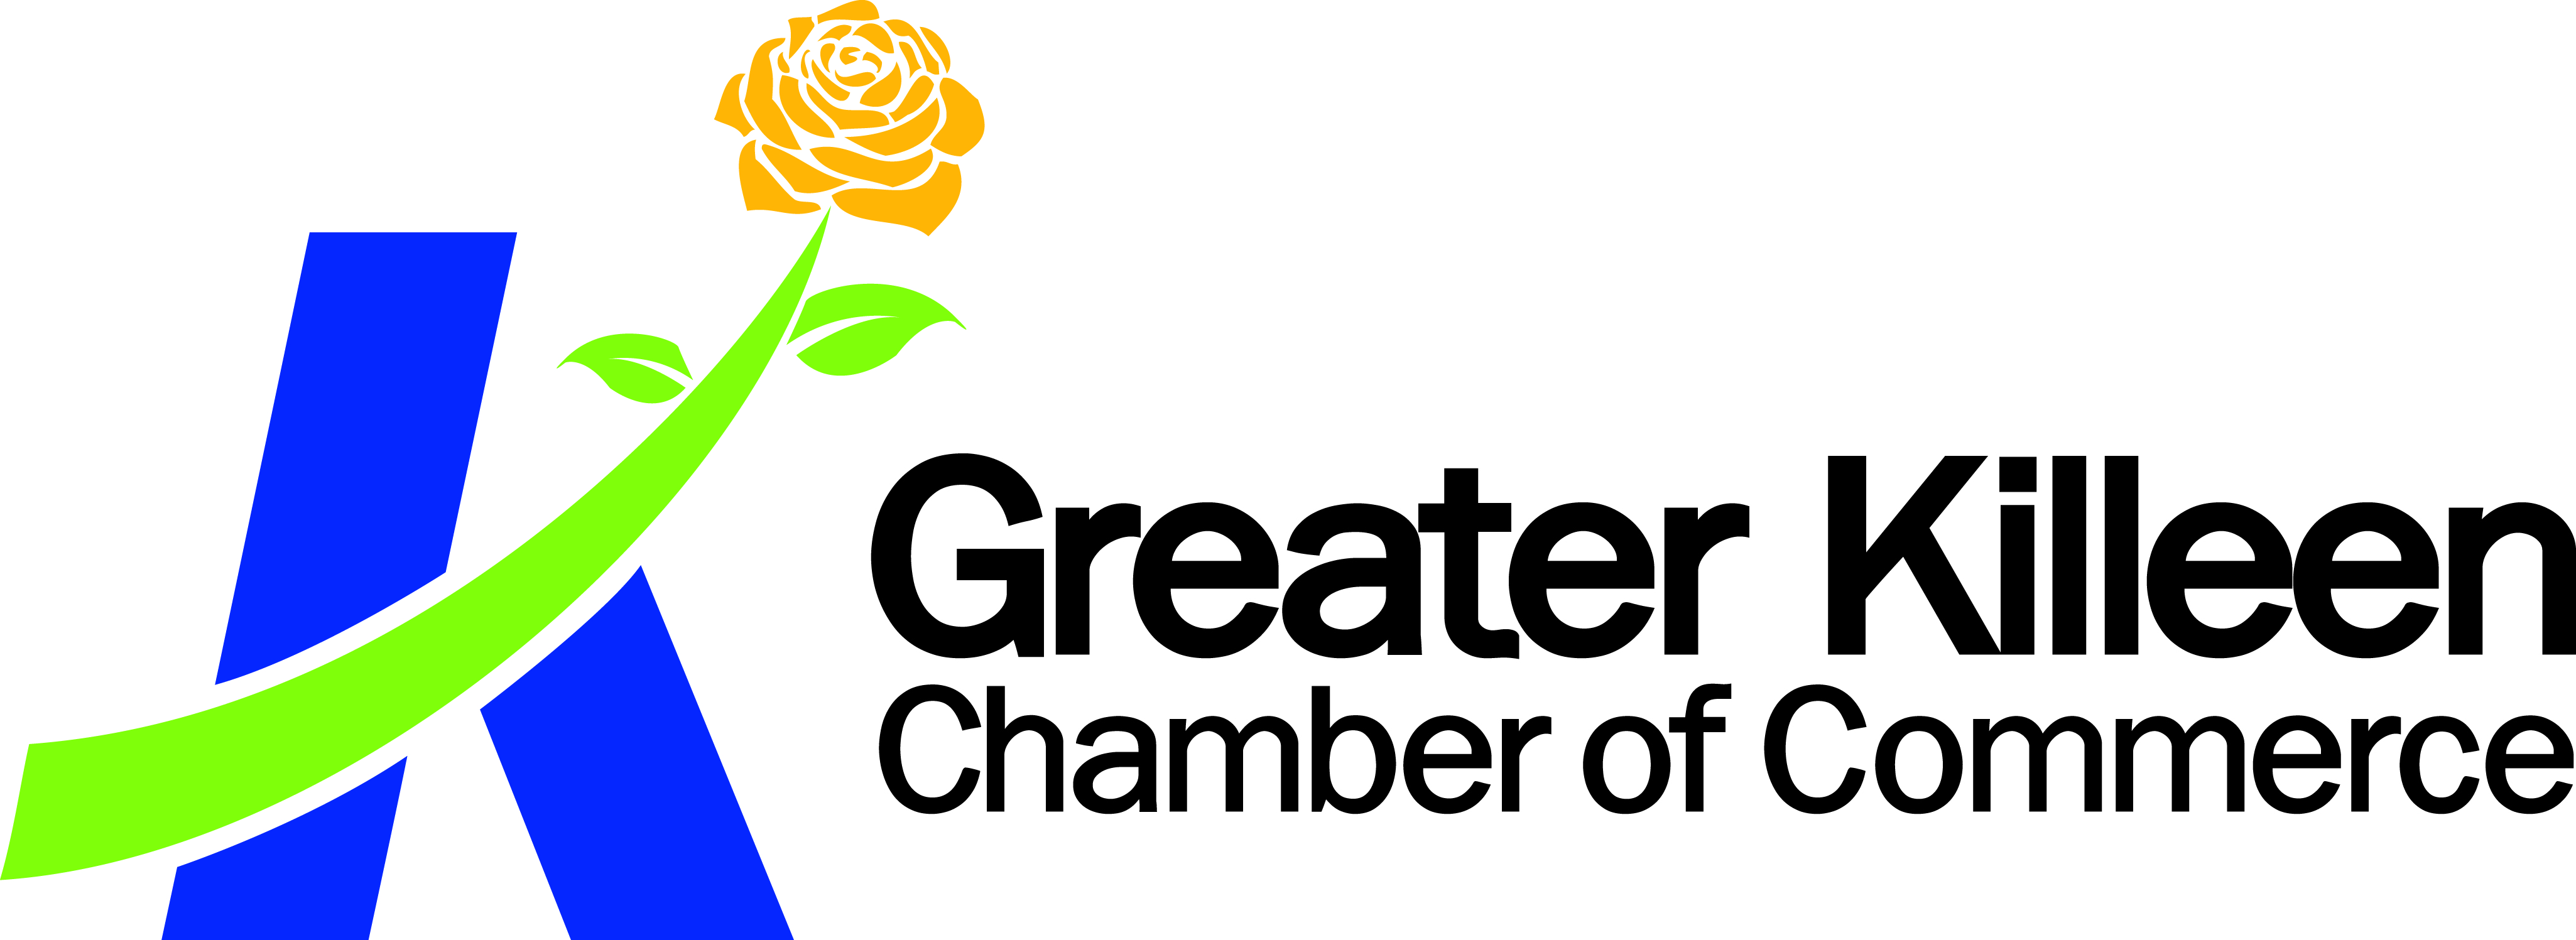 Capital Campaign Client - Greater Killeen Chamber of Commerce